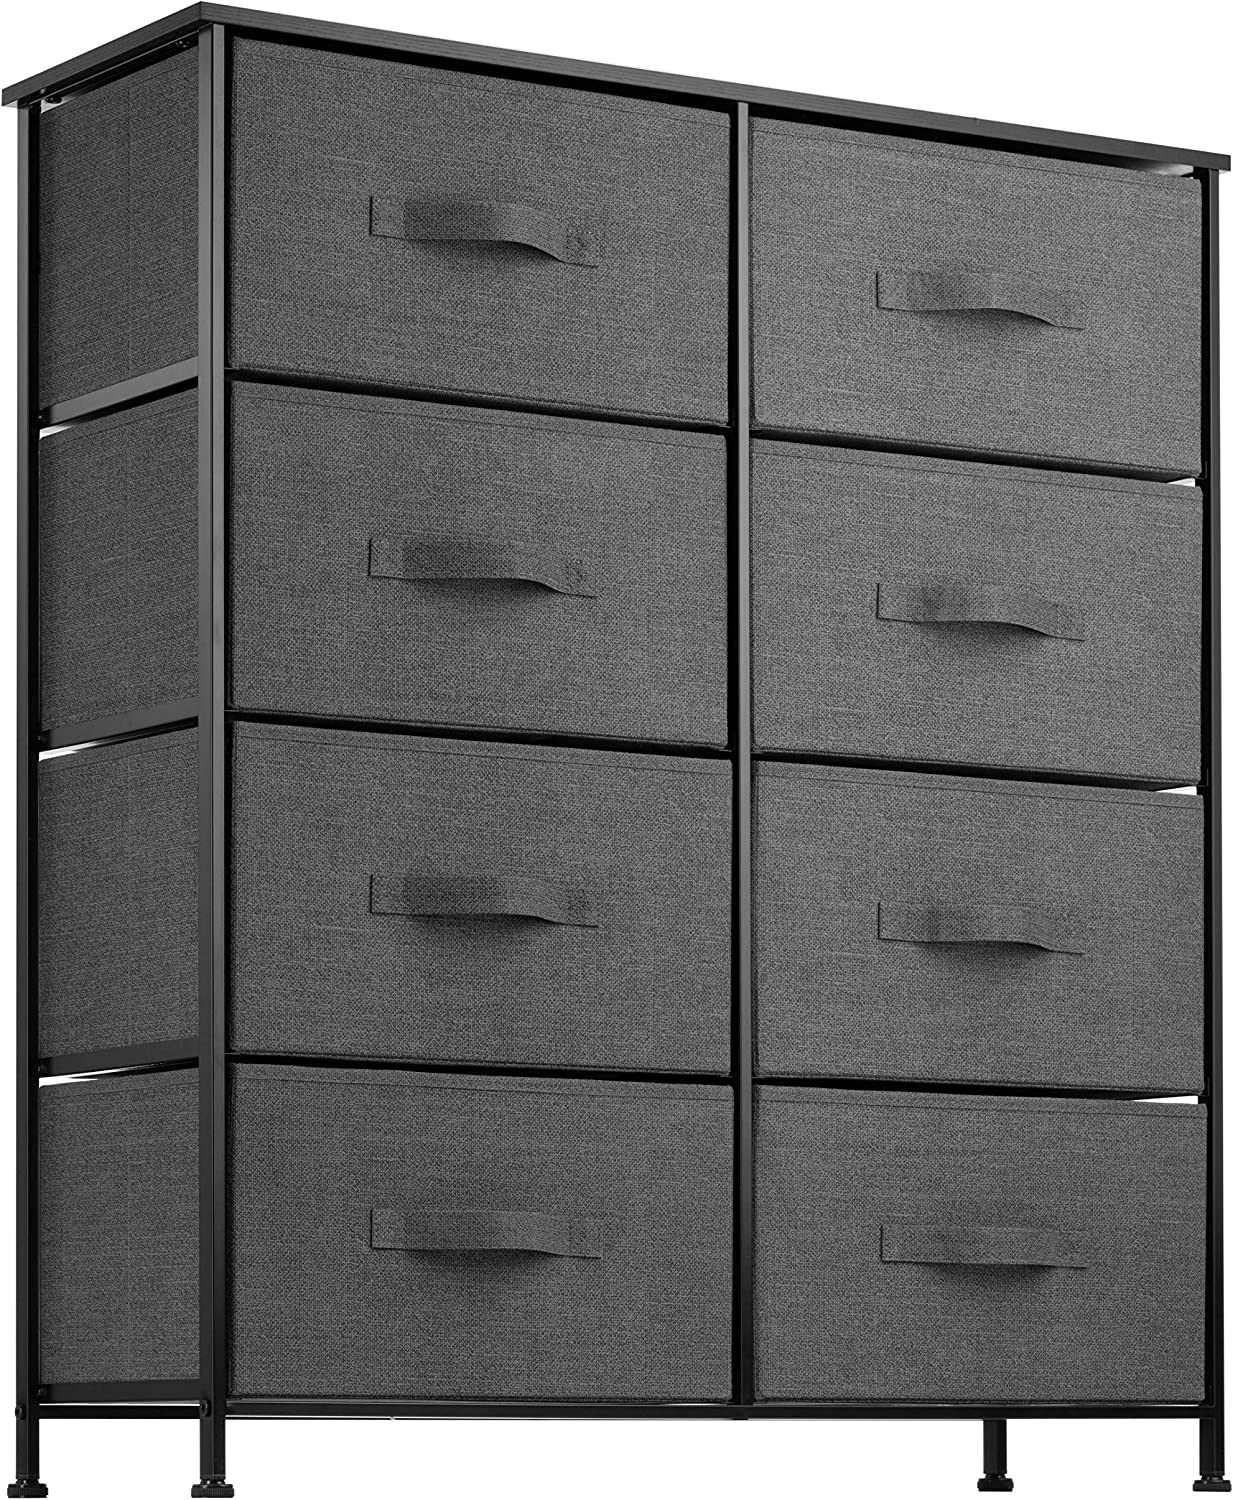 8 Drawer Dresser Organizer Fabric Storage Chest for Bedroom, Hallway, Entryway, Closets, Nurseries. Furniture Storage Tower Sturdy Steel Frame, Wood Top, Easy Pull Handle Textured Print Drawers